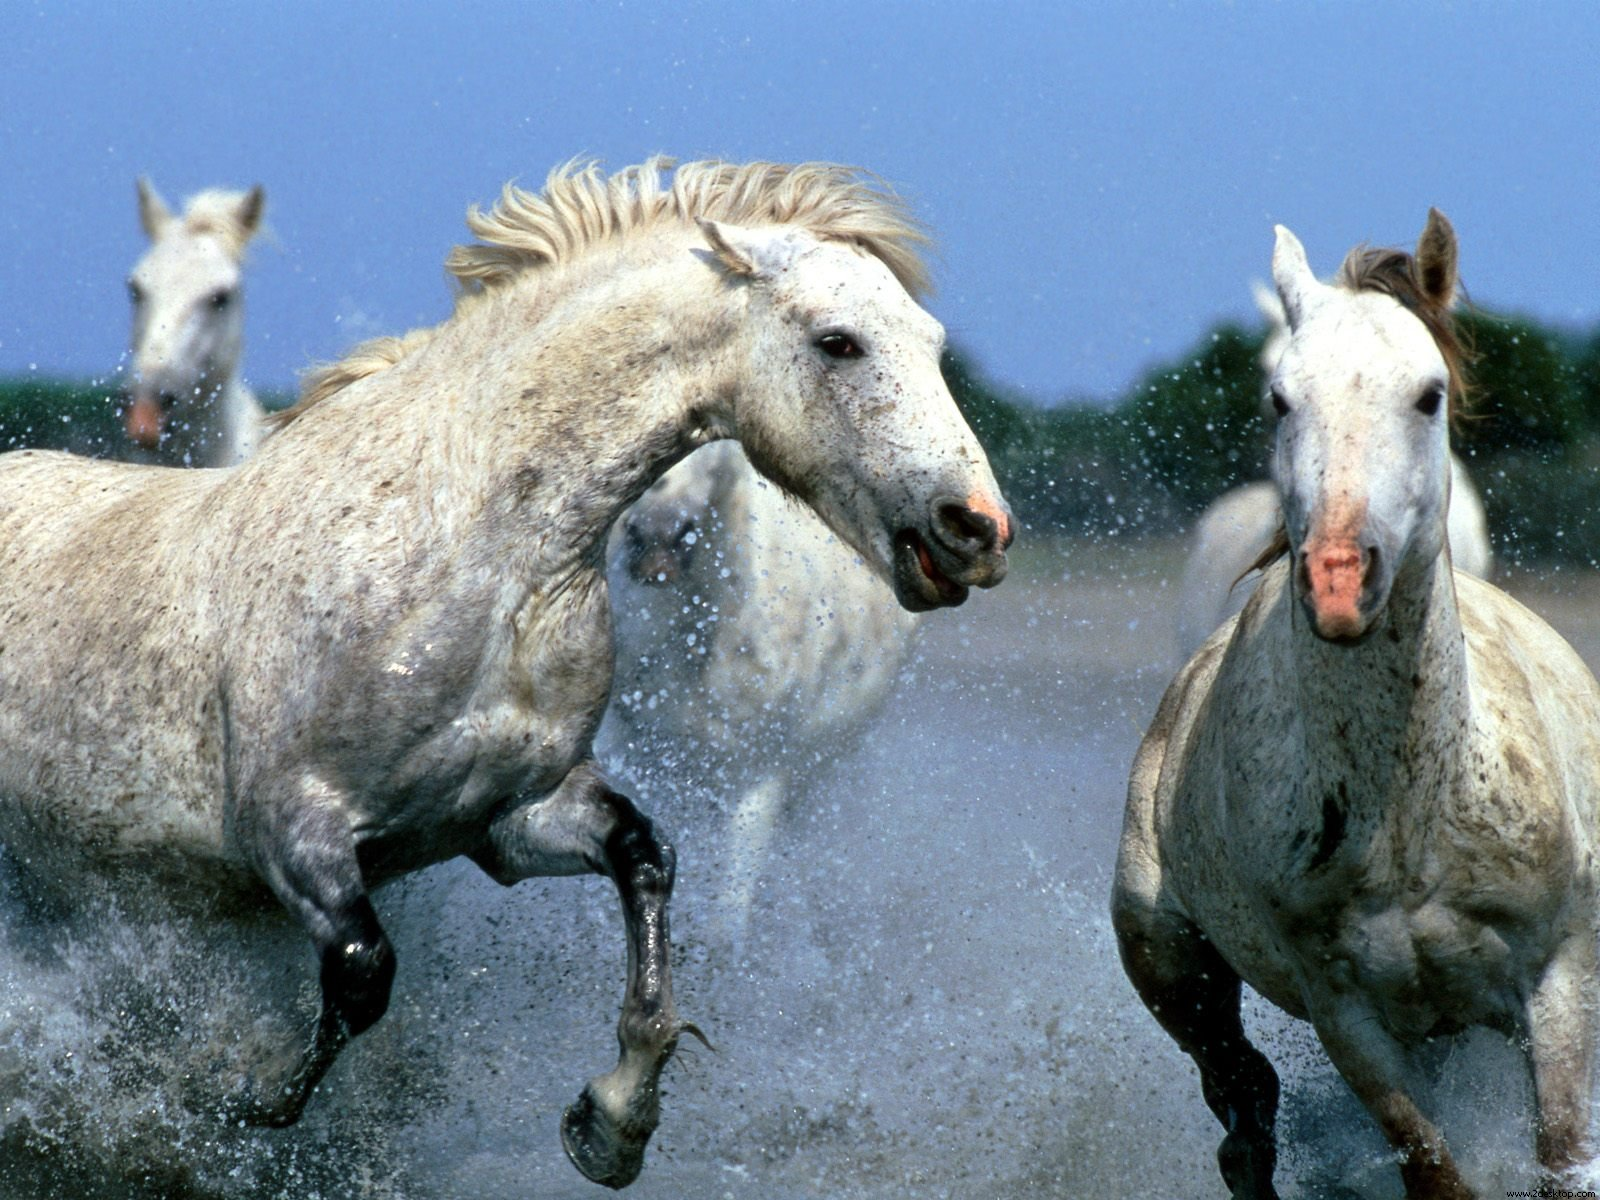 White running horses - photo#12